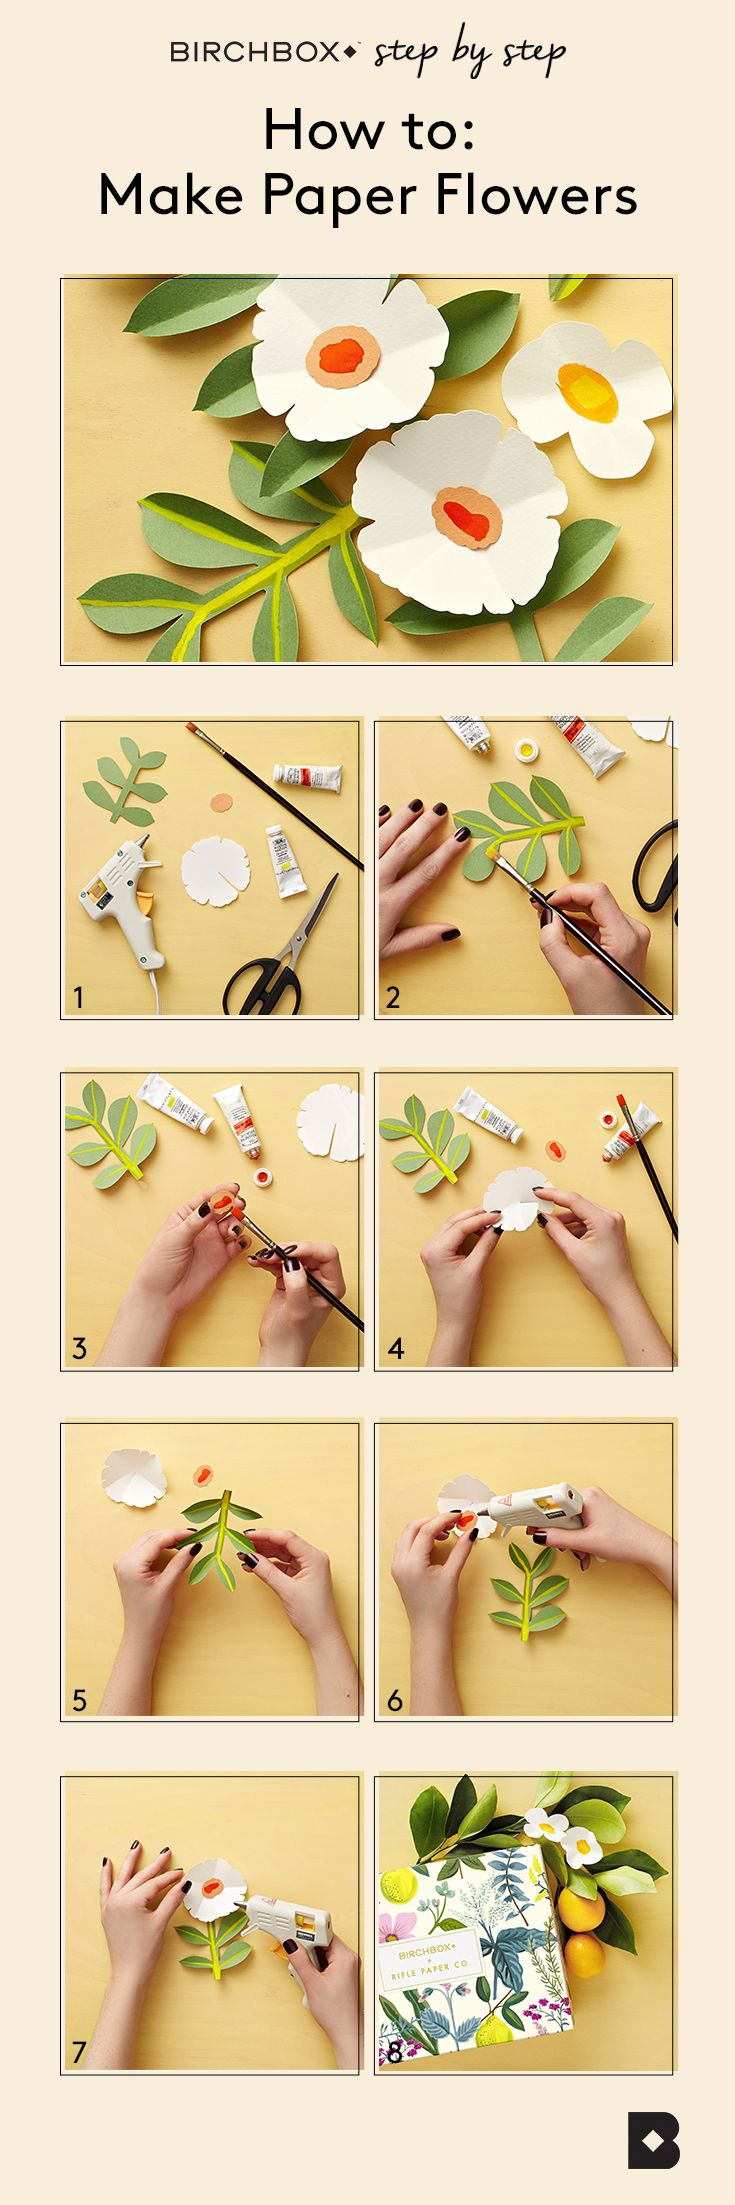 Learn how to make paper flowers inspired by designs by rifle paper learn how to make paper flowers inspired by designs by rifle paper co for mightylinksfo Gallery